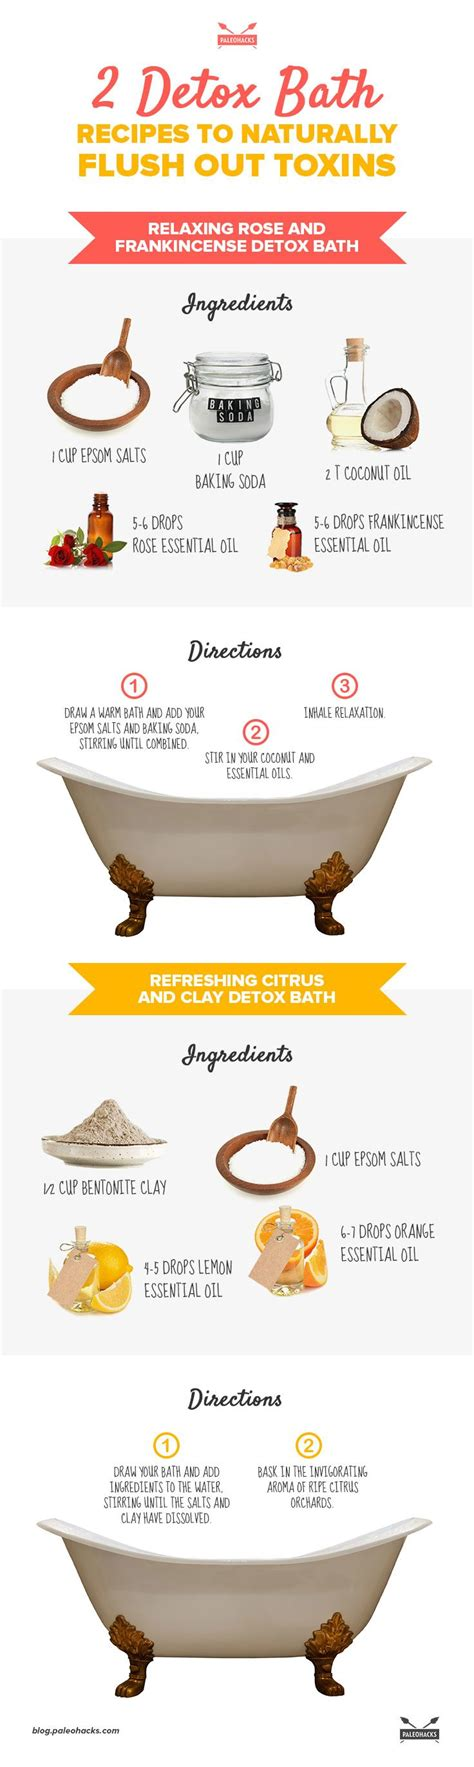 @ 2 Detox Bath Recipes To Naturally Flush Out Toxins.